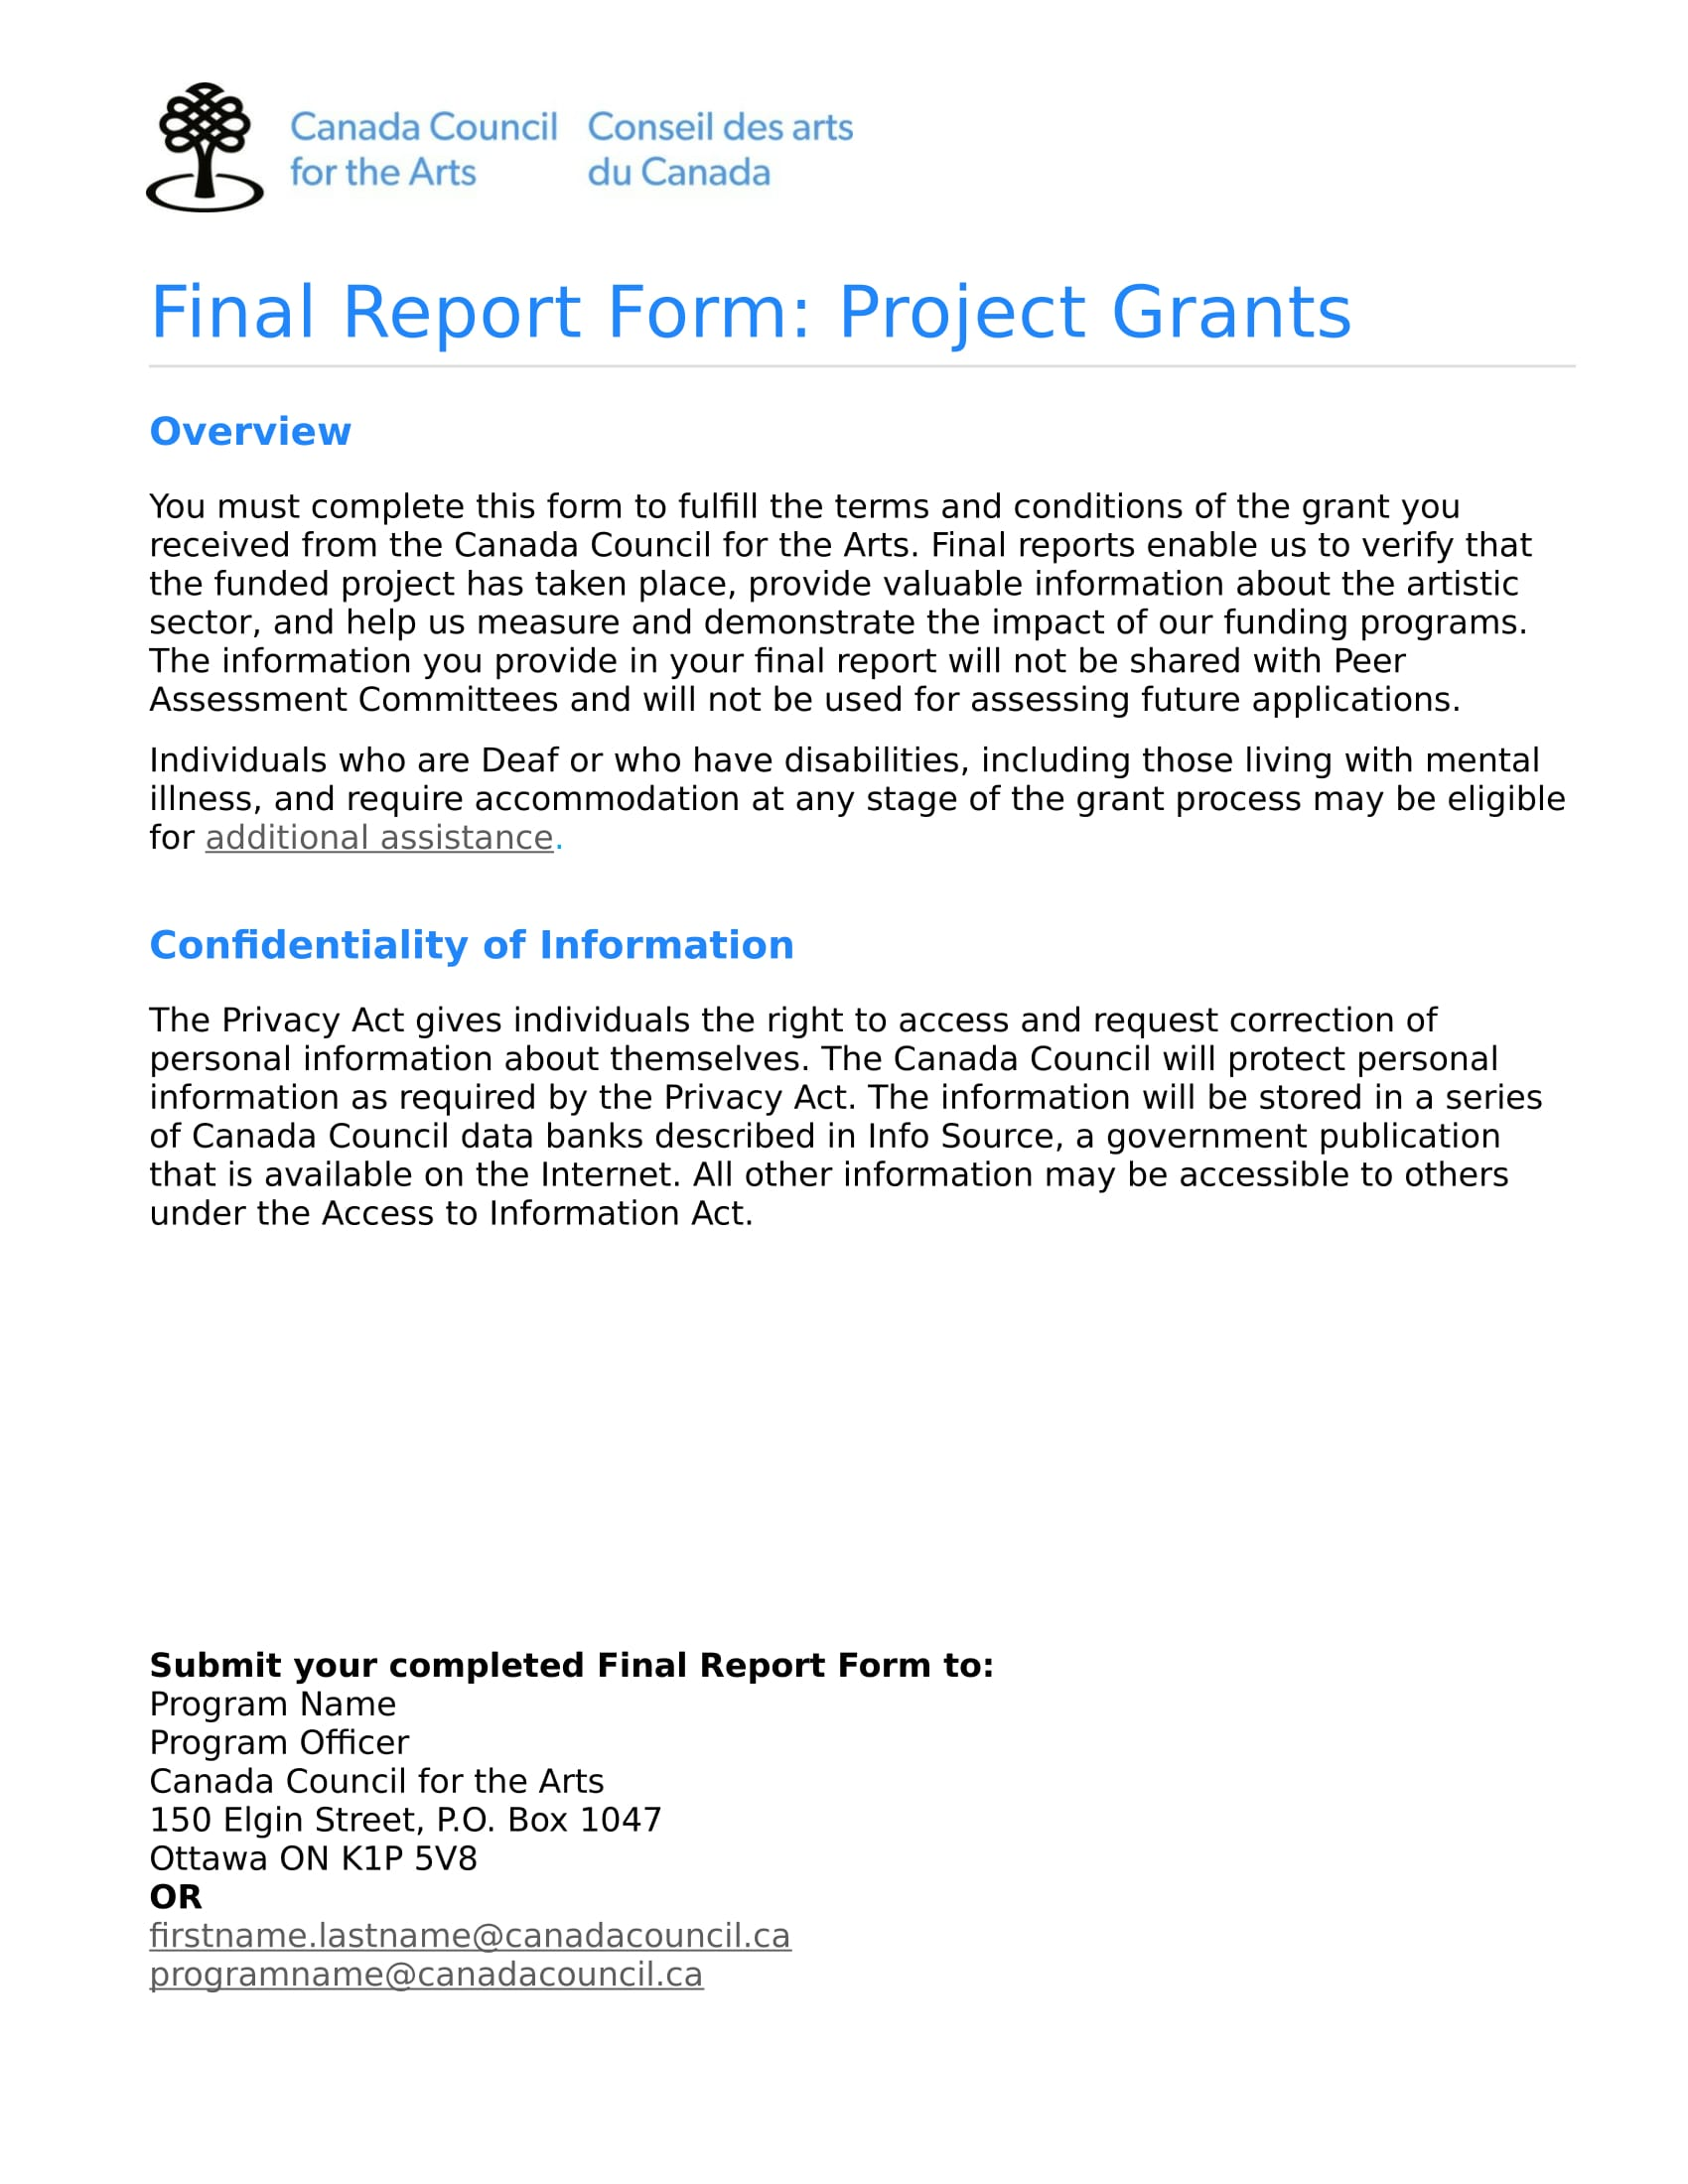 final report form for project grants in doc 1